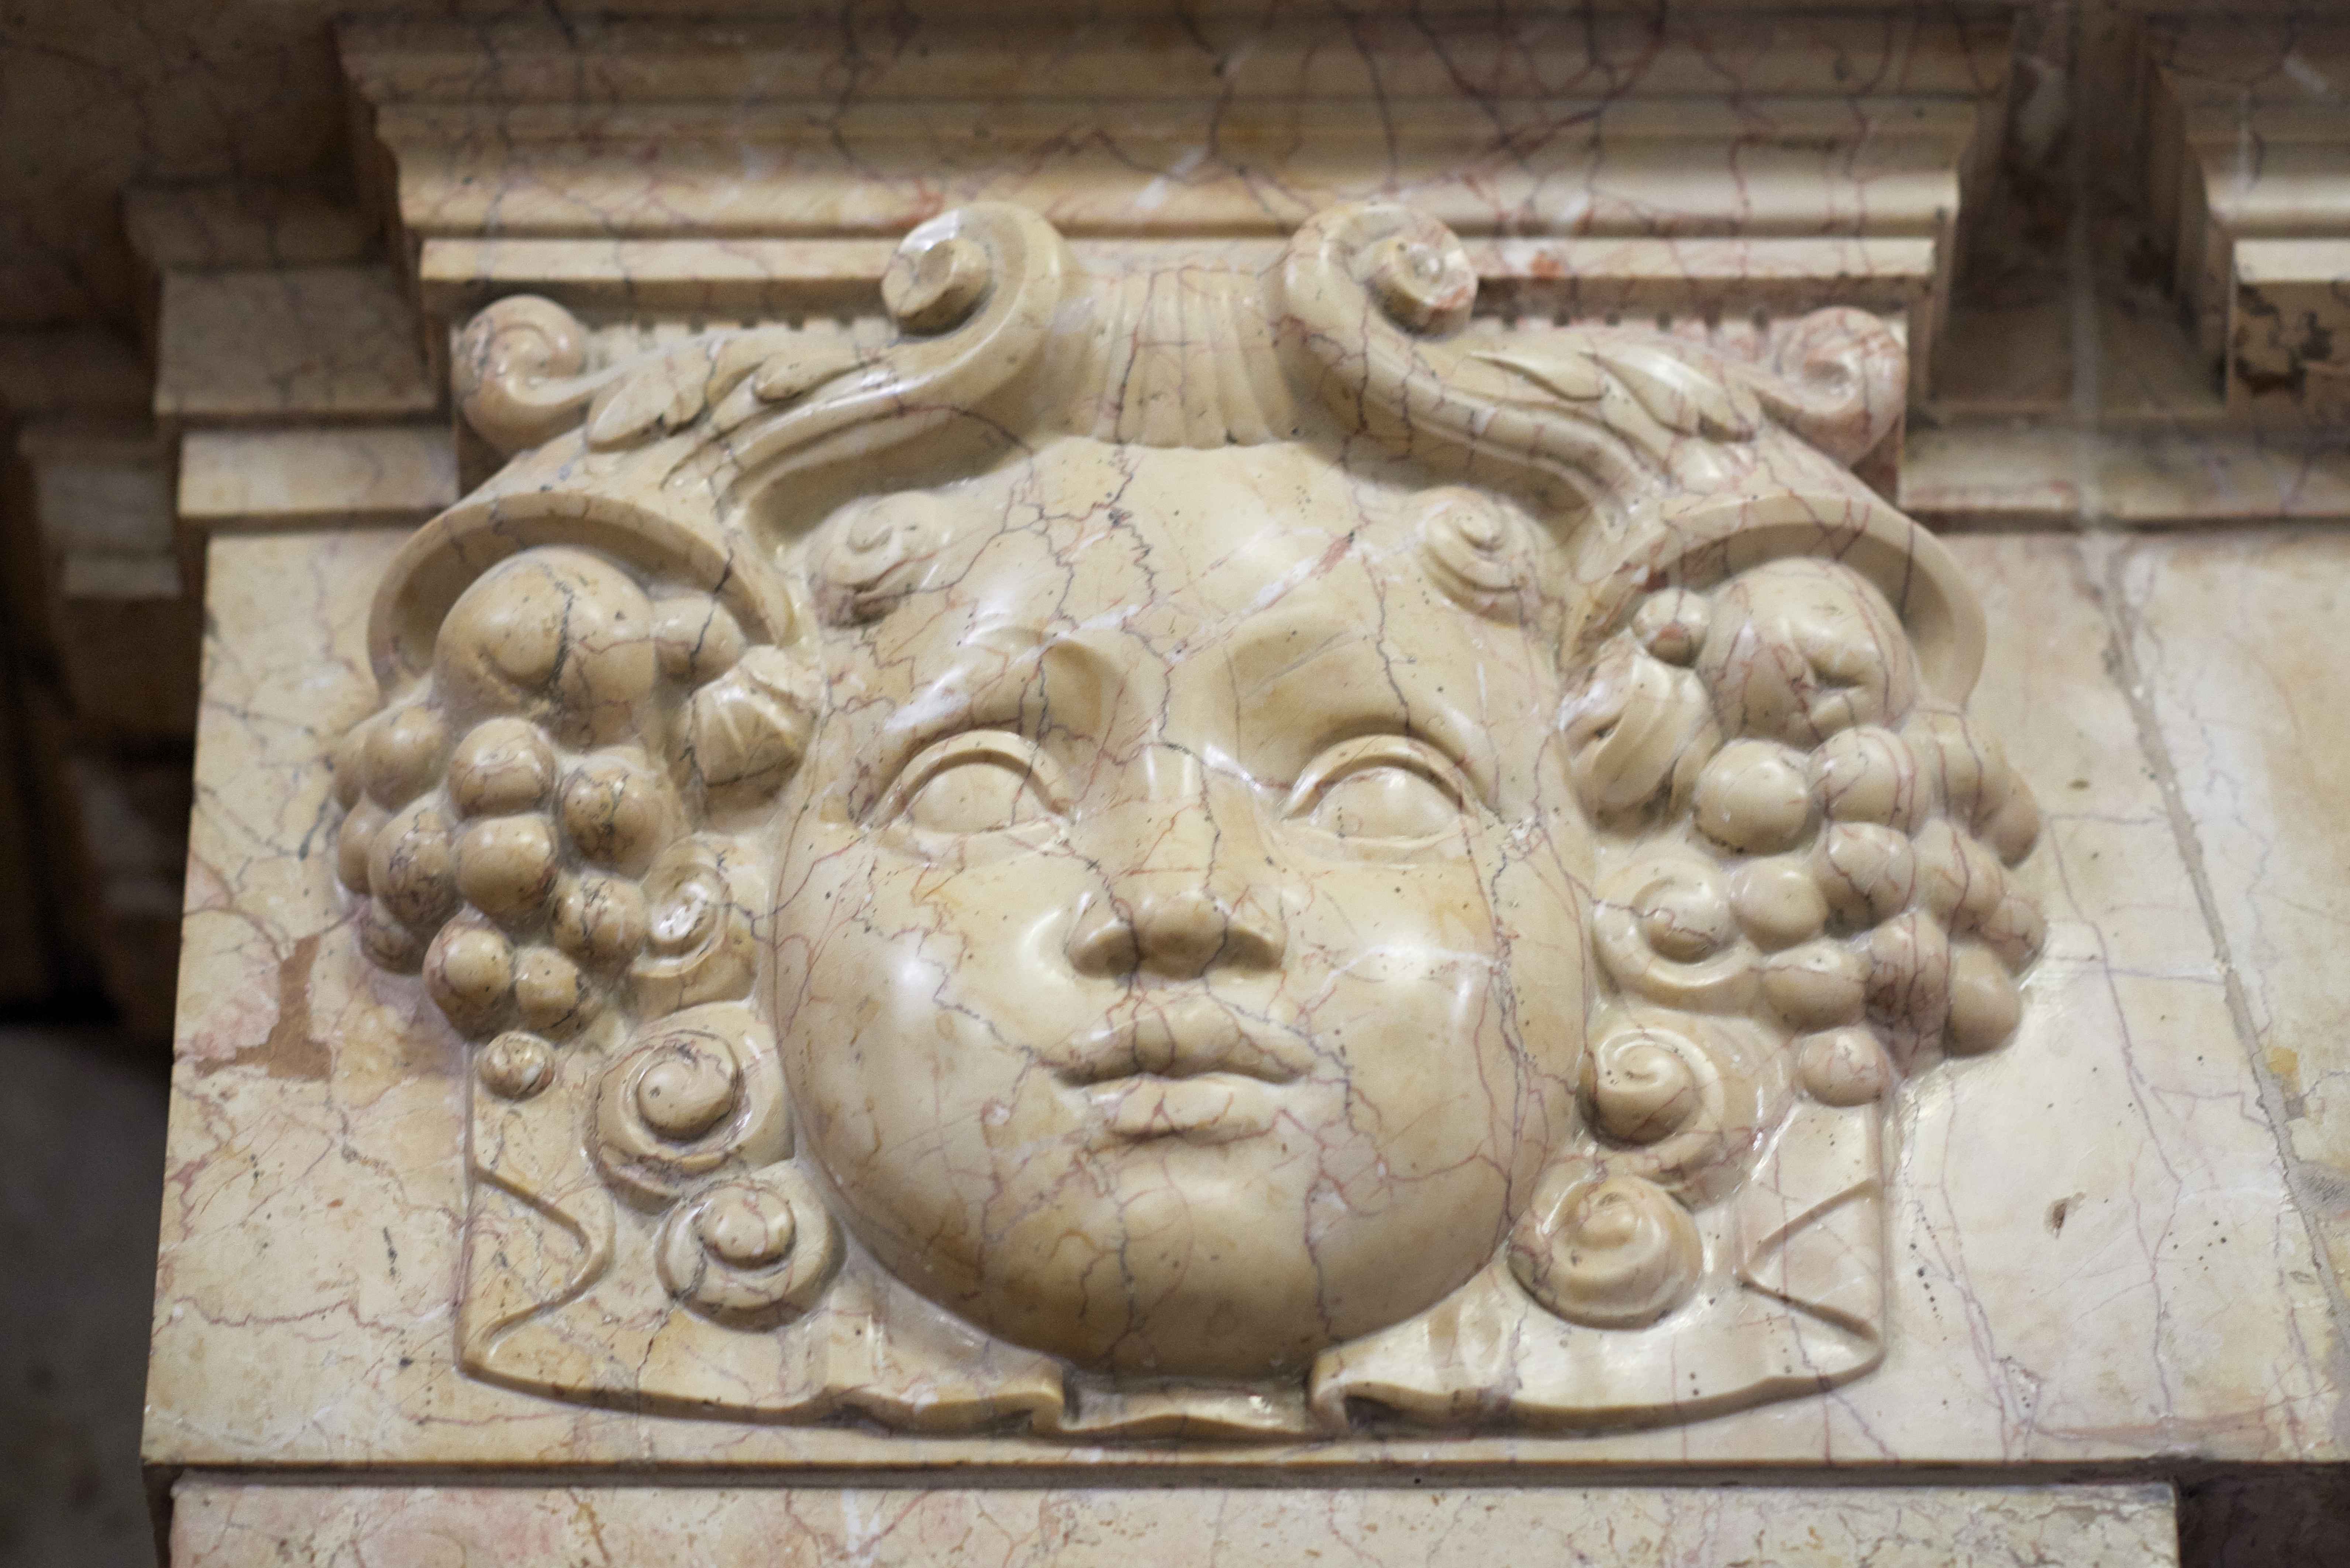 12._marble_relief_vaci_1_budapest_hungary